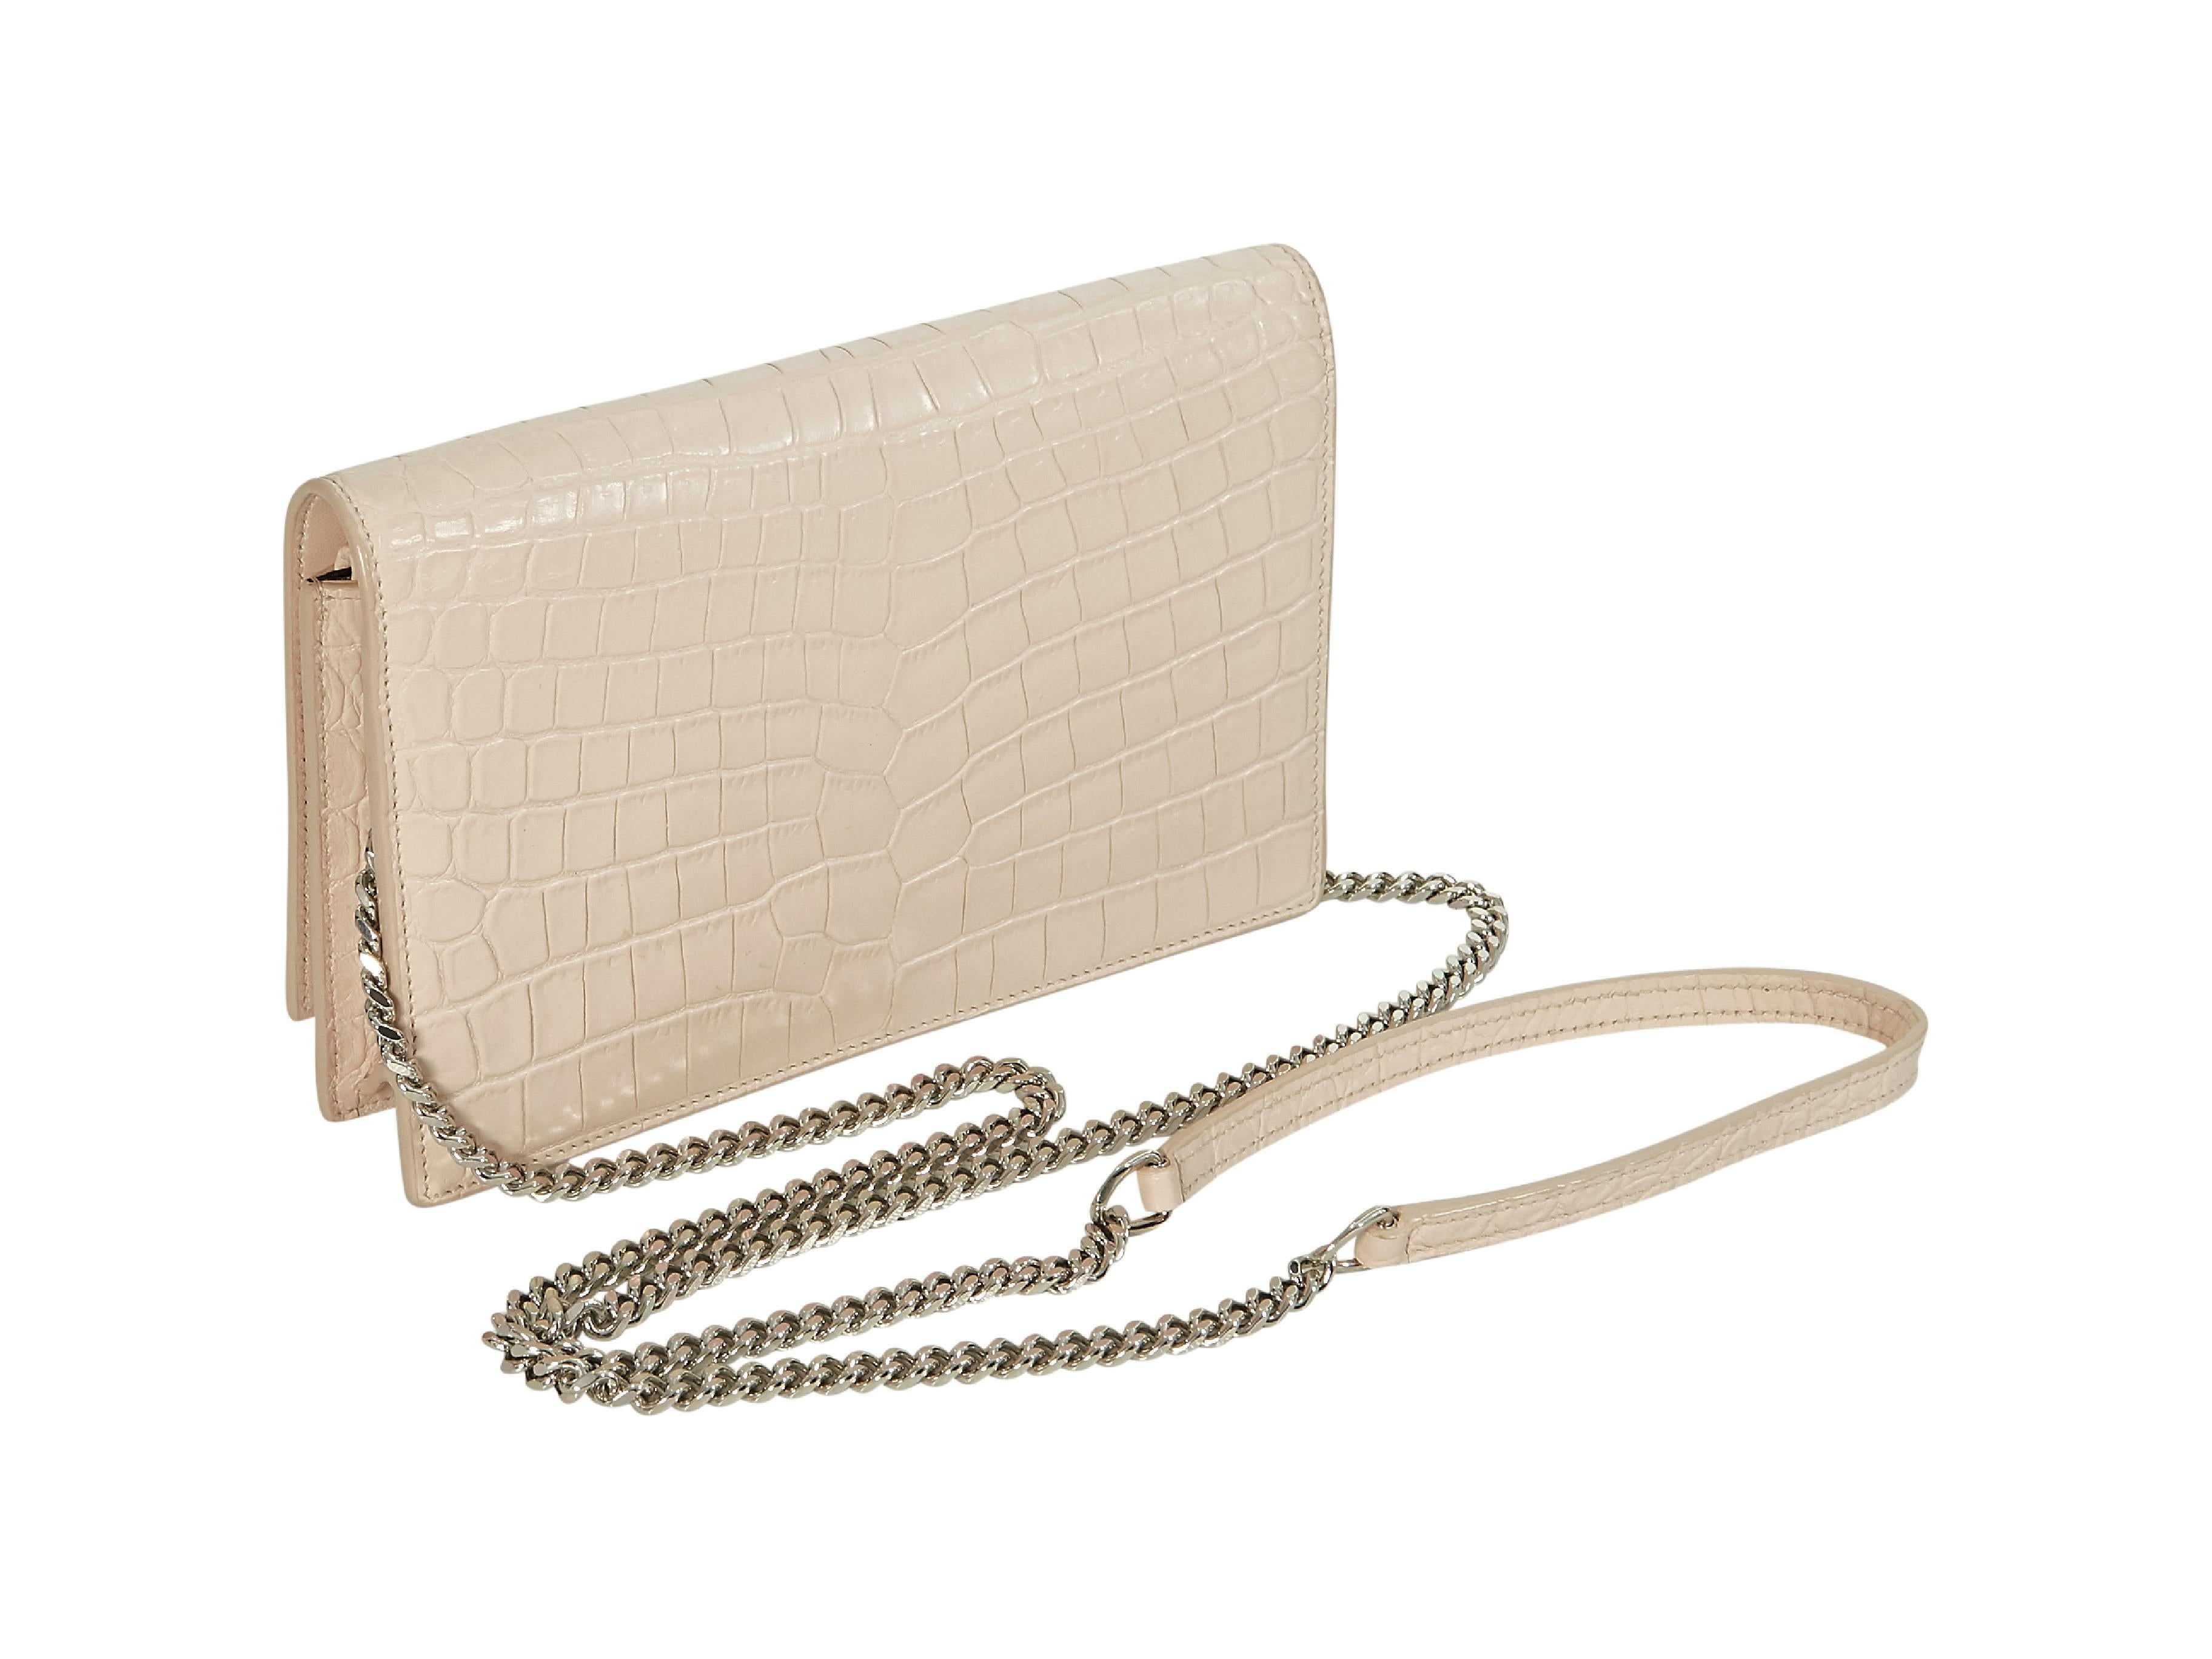 Pink Yves Saint Laurent Kate Wallet On A Chain Bag For Sale at 1stdibs 85201b25521c0